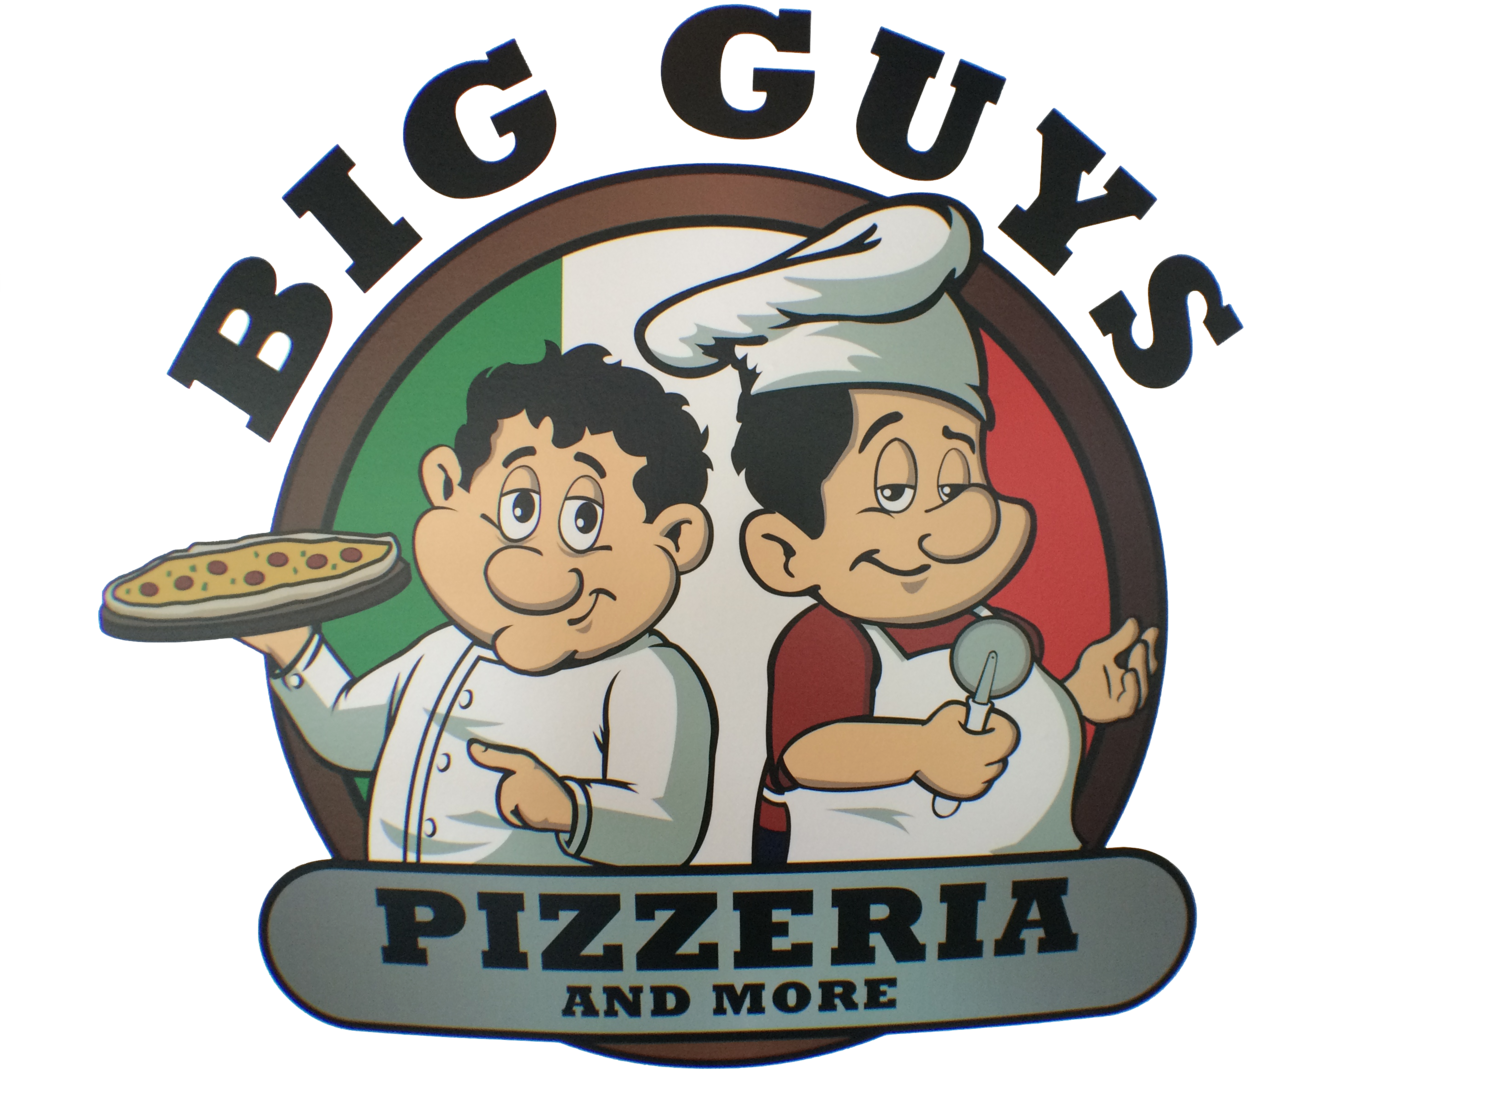 Big Guys Pizzeria and More